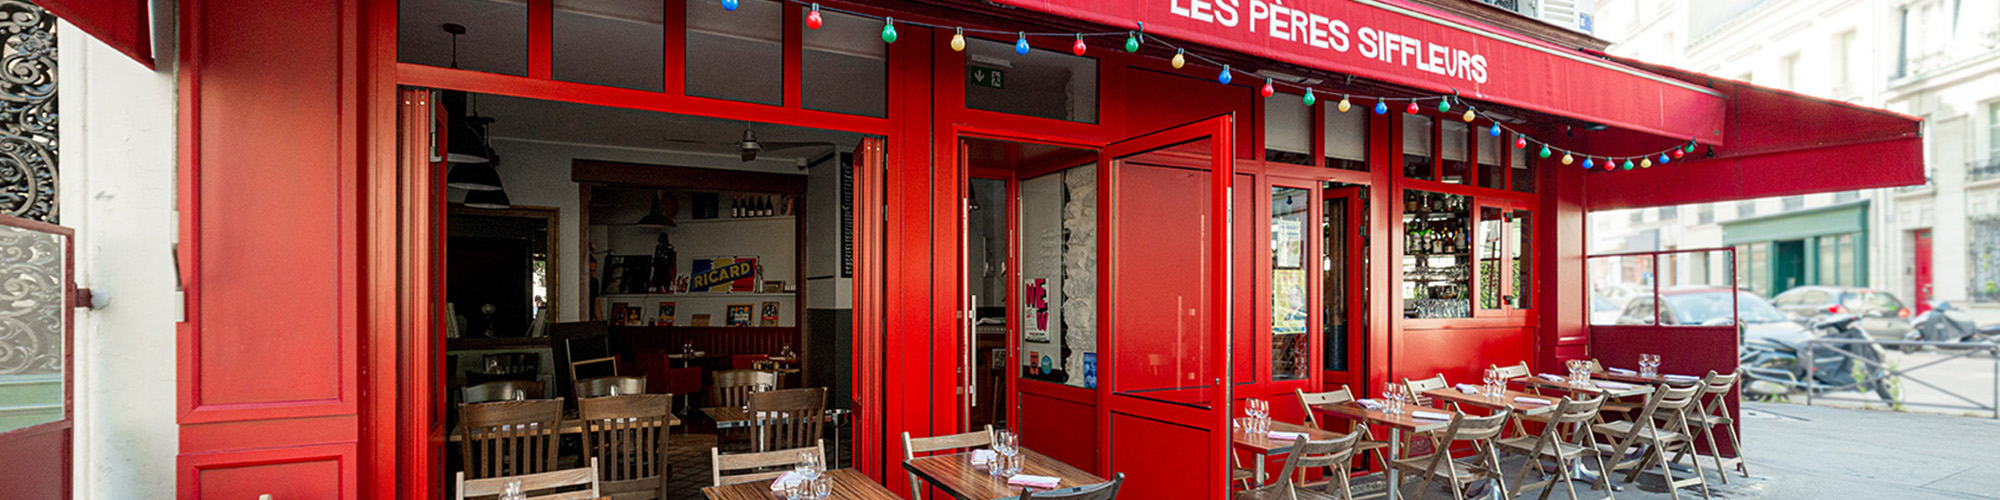 lesperessiffleurs-restaurant-paris-bistronomie-slider-home-02